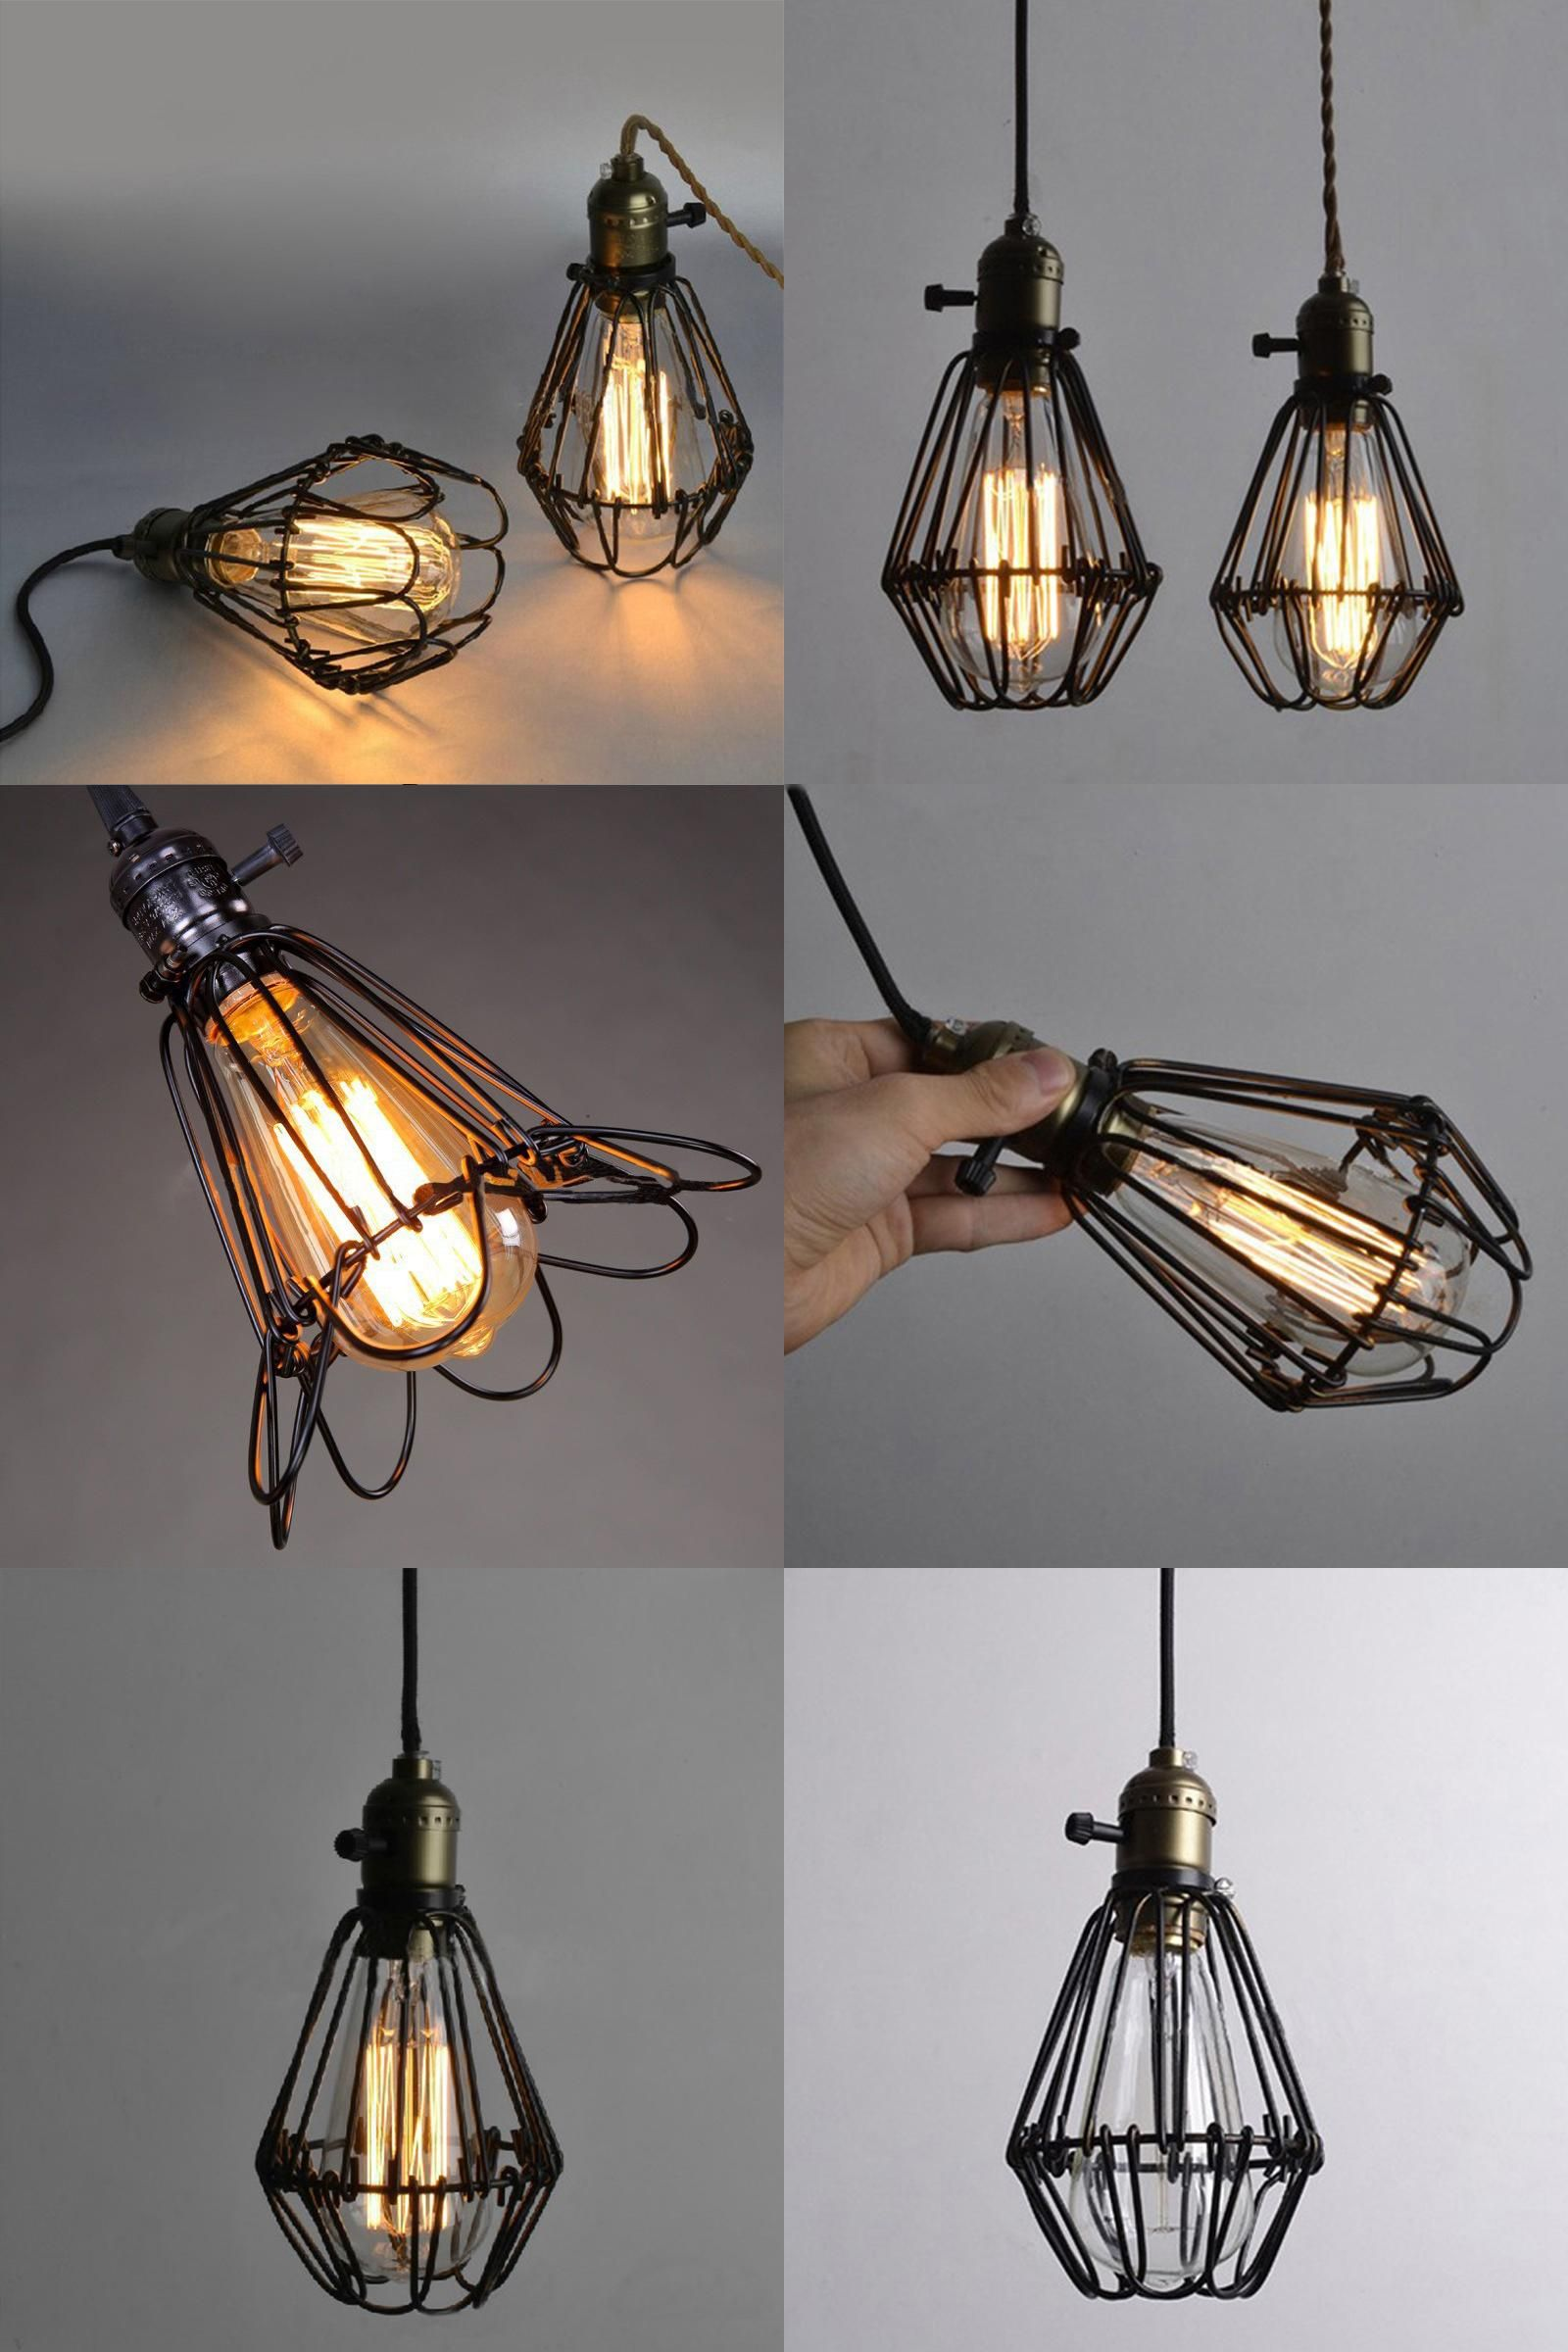 Visit To Buy Frled Fashion Vintage Wire Lamp Cage Diy Lampshade